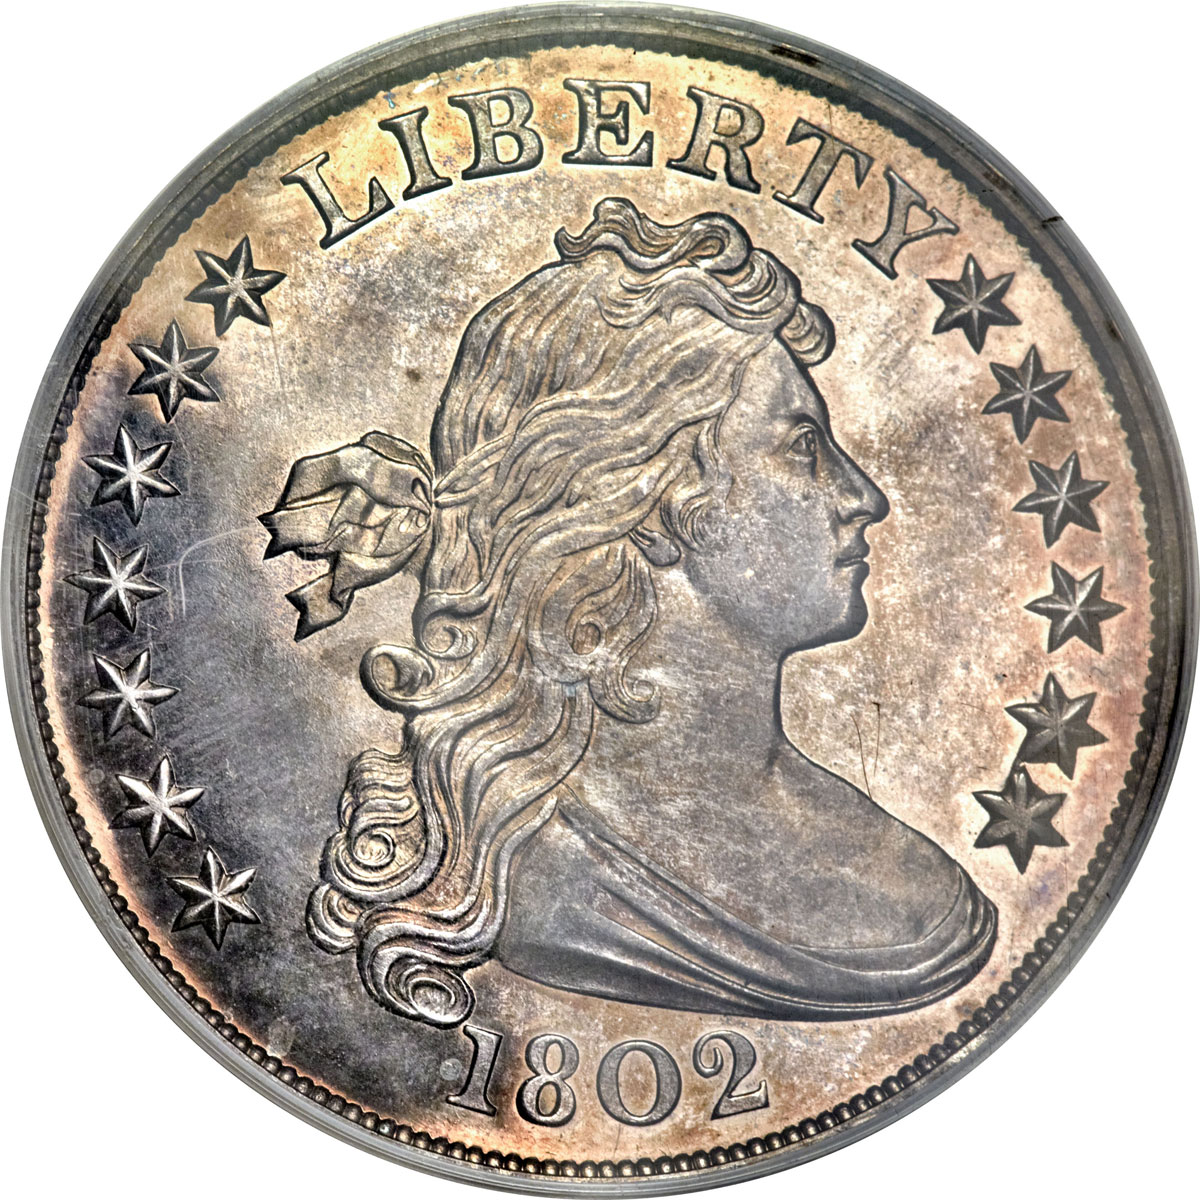 1907 Ultra High Relief Double Eagle Brings $1+ Million To Lead Heritage's $27.5+ Million Philadelphia Auction